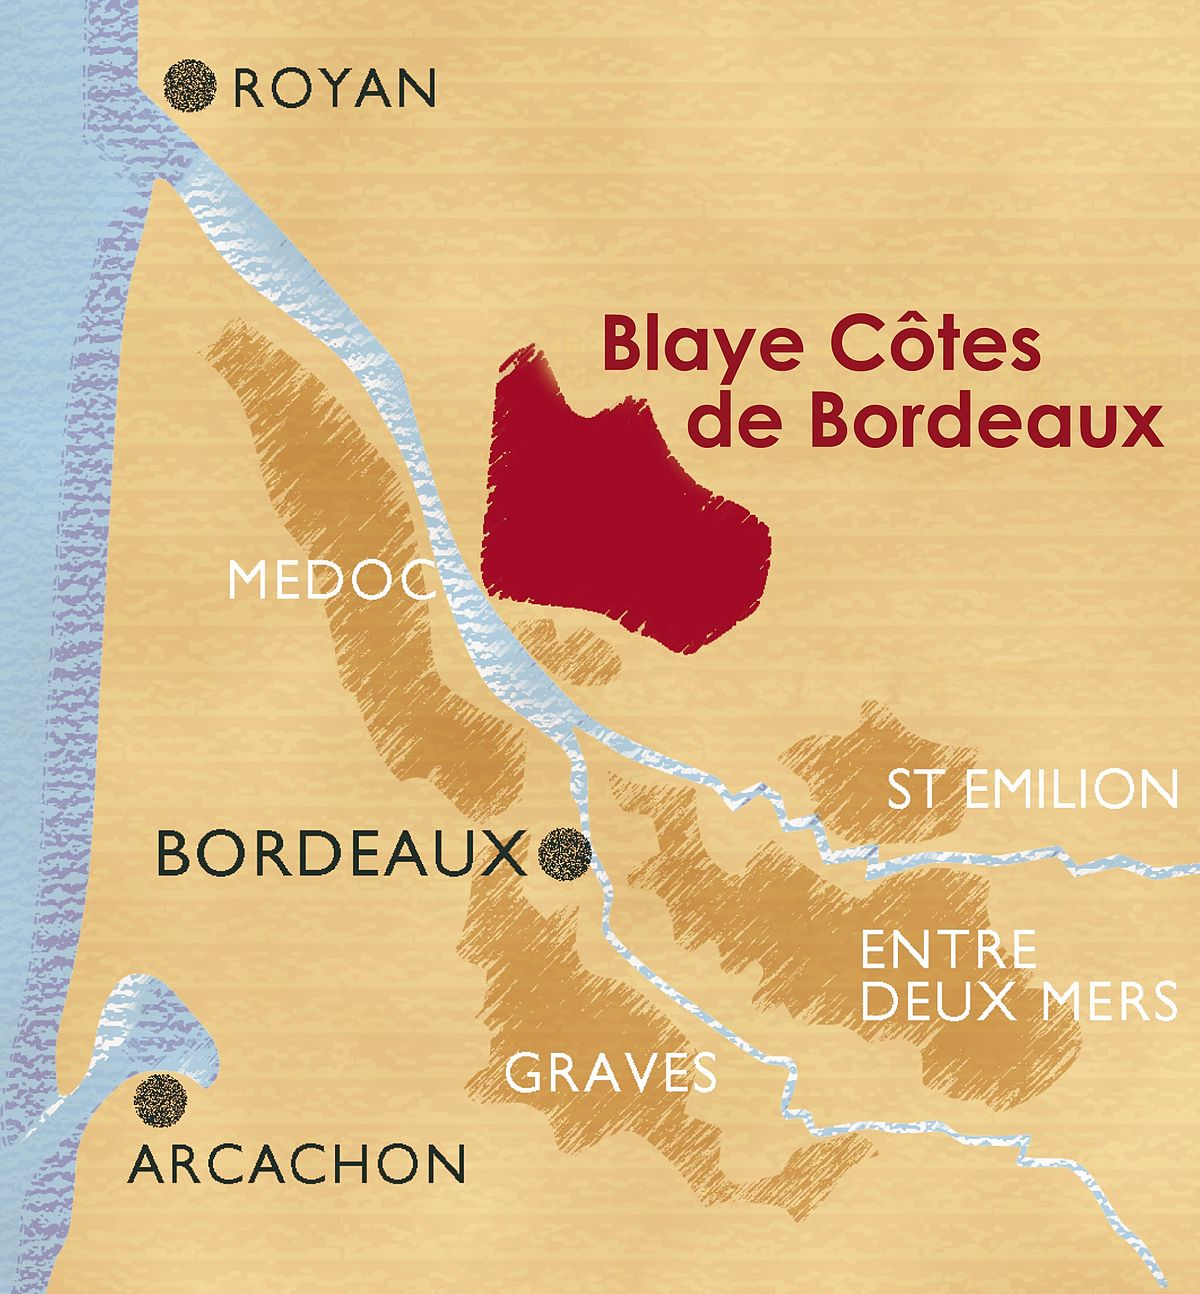 Carte Graphique Bordeaux.Blaye Cotes De Bordeaux Wikipedia